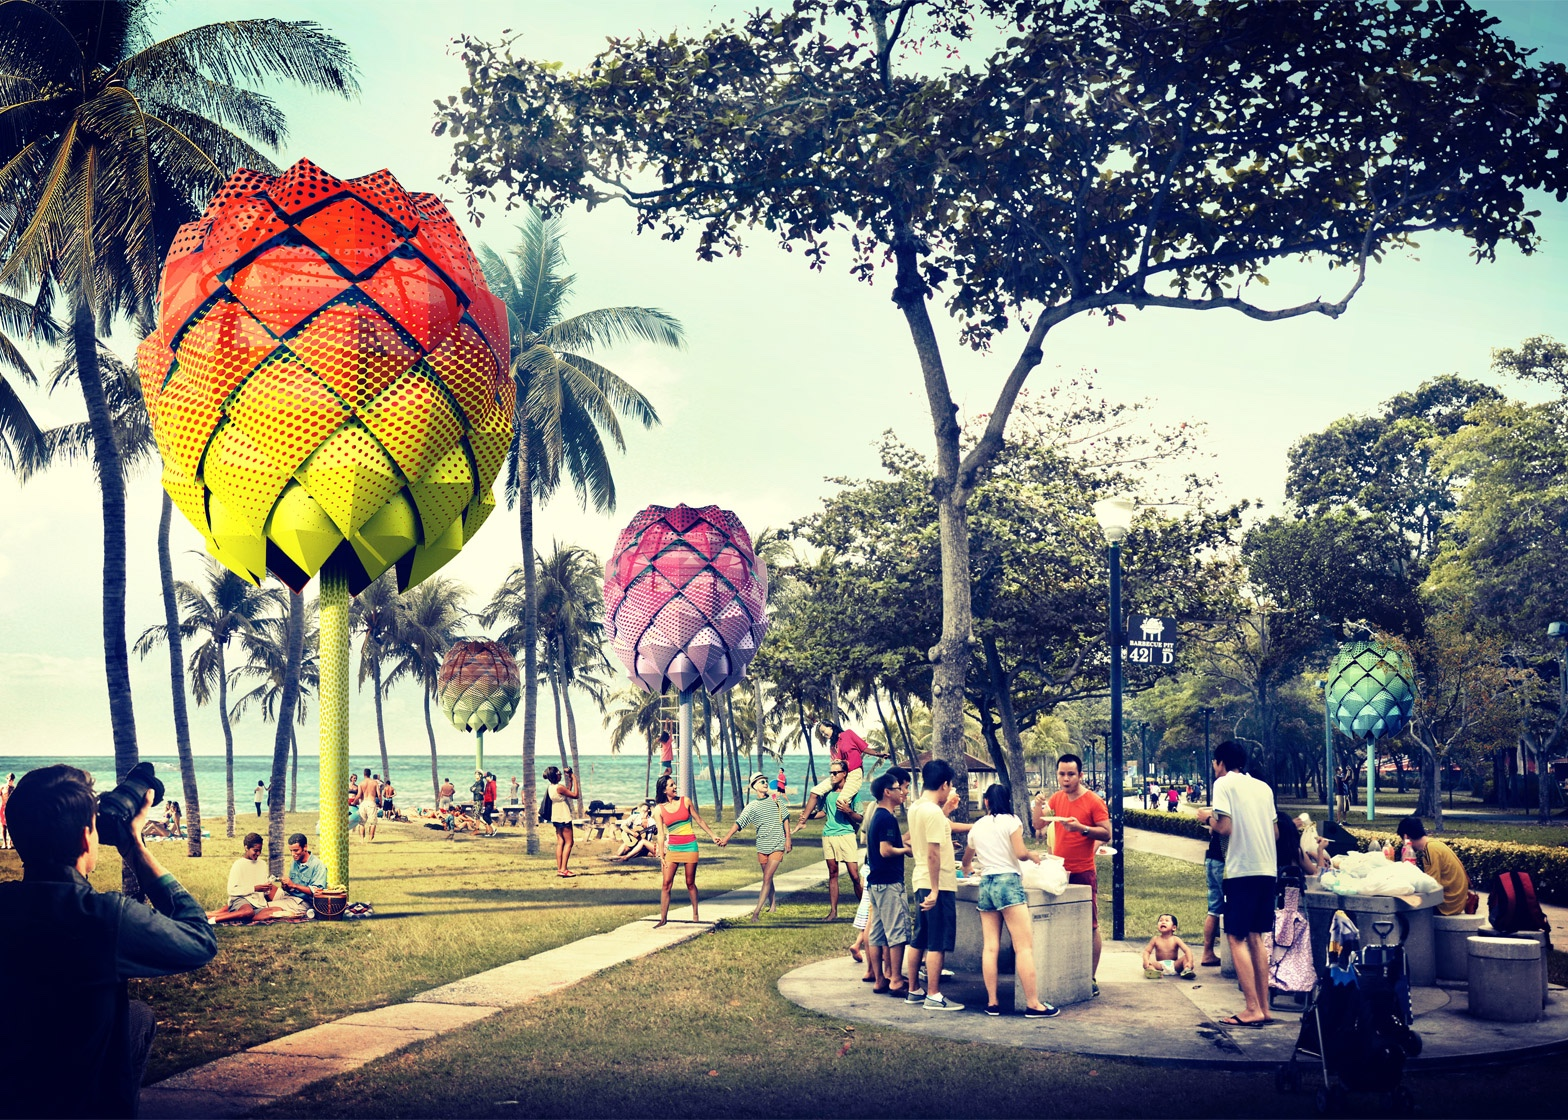 How the beach huts designed by Spark will look.